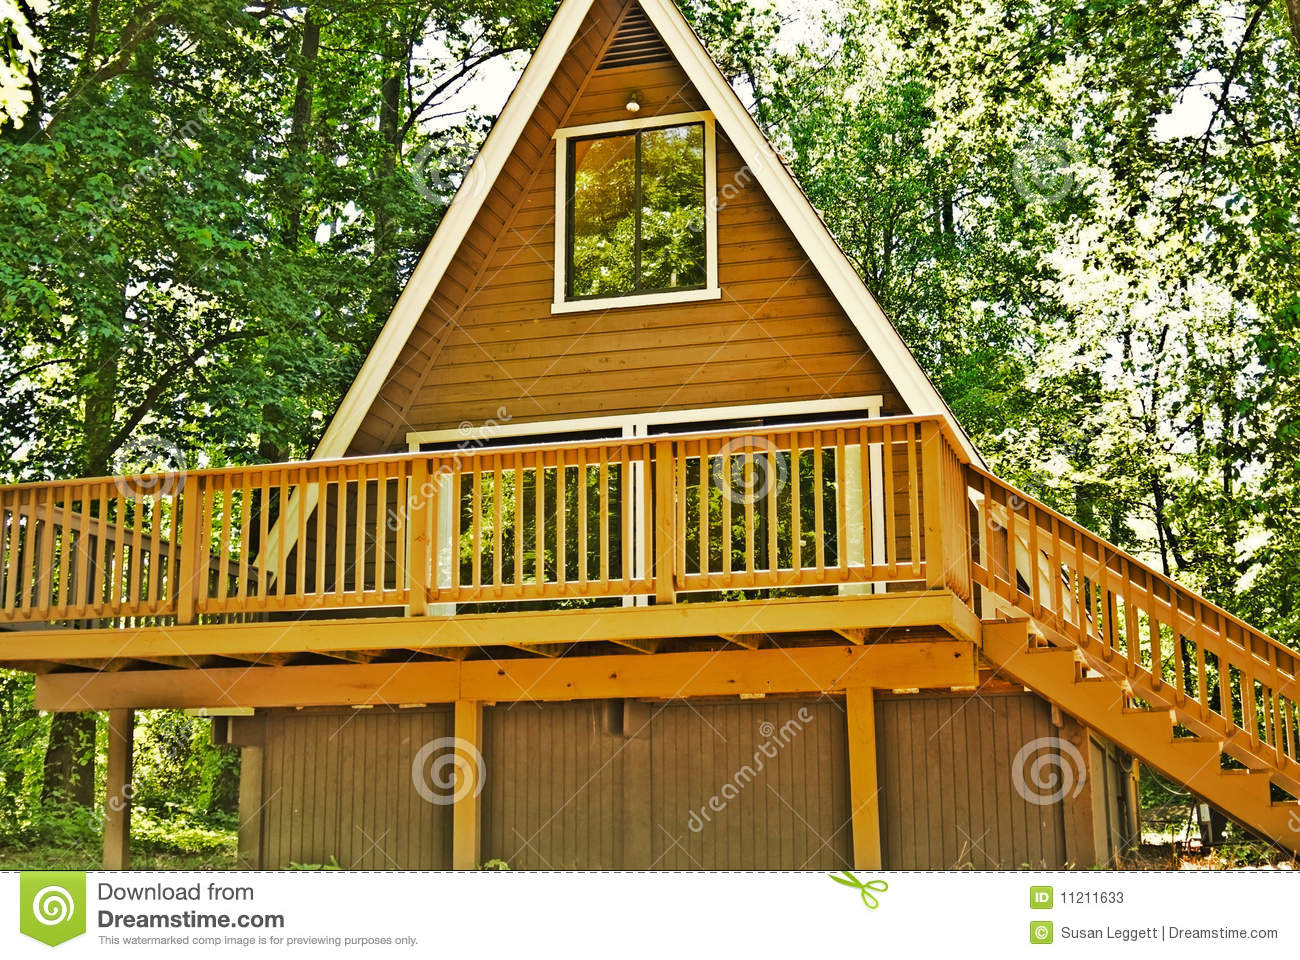 Wooden a frame house deck stock image image of glass for What is an a frame house